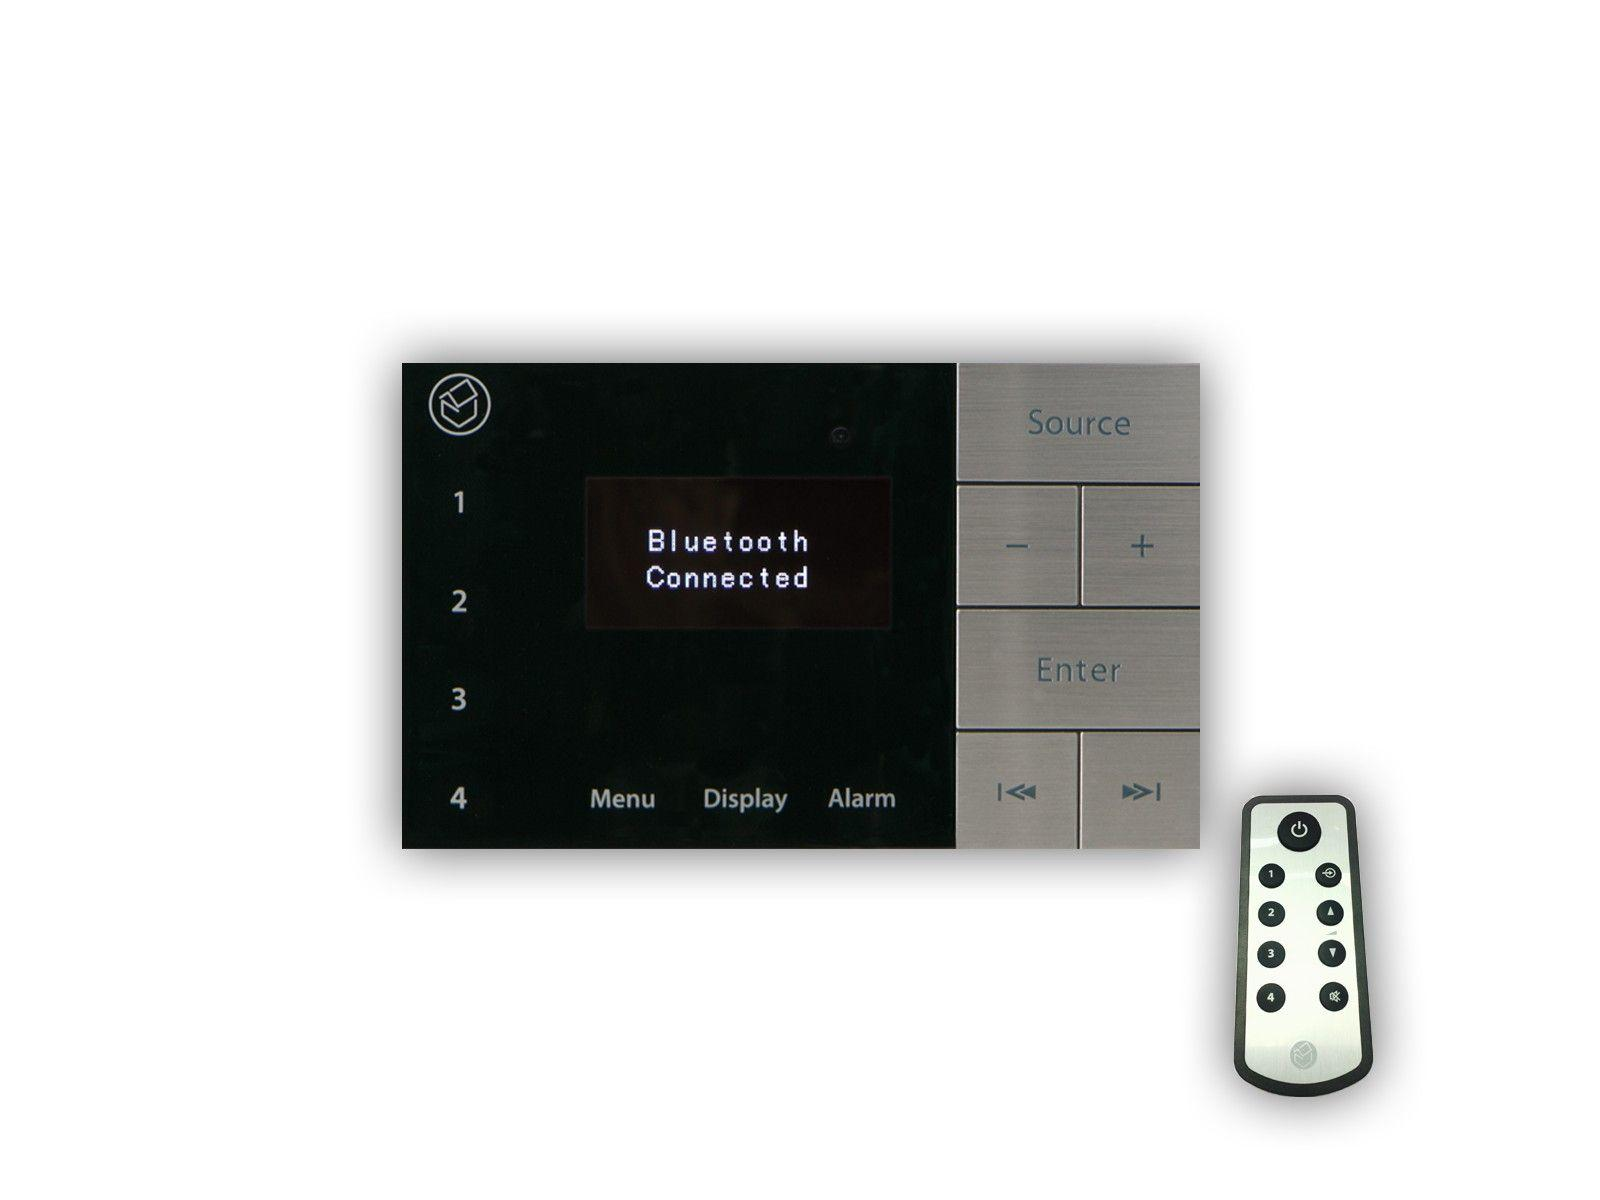 systemline e100 panel with remote